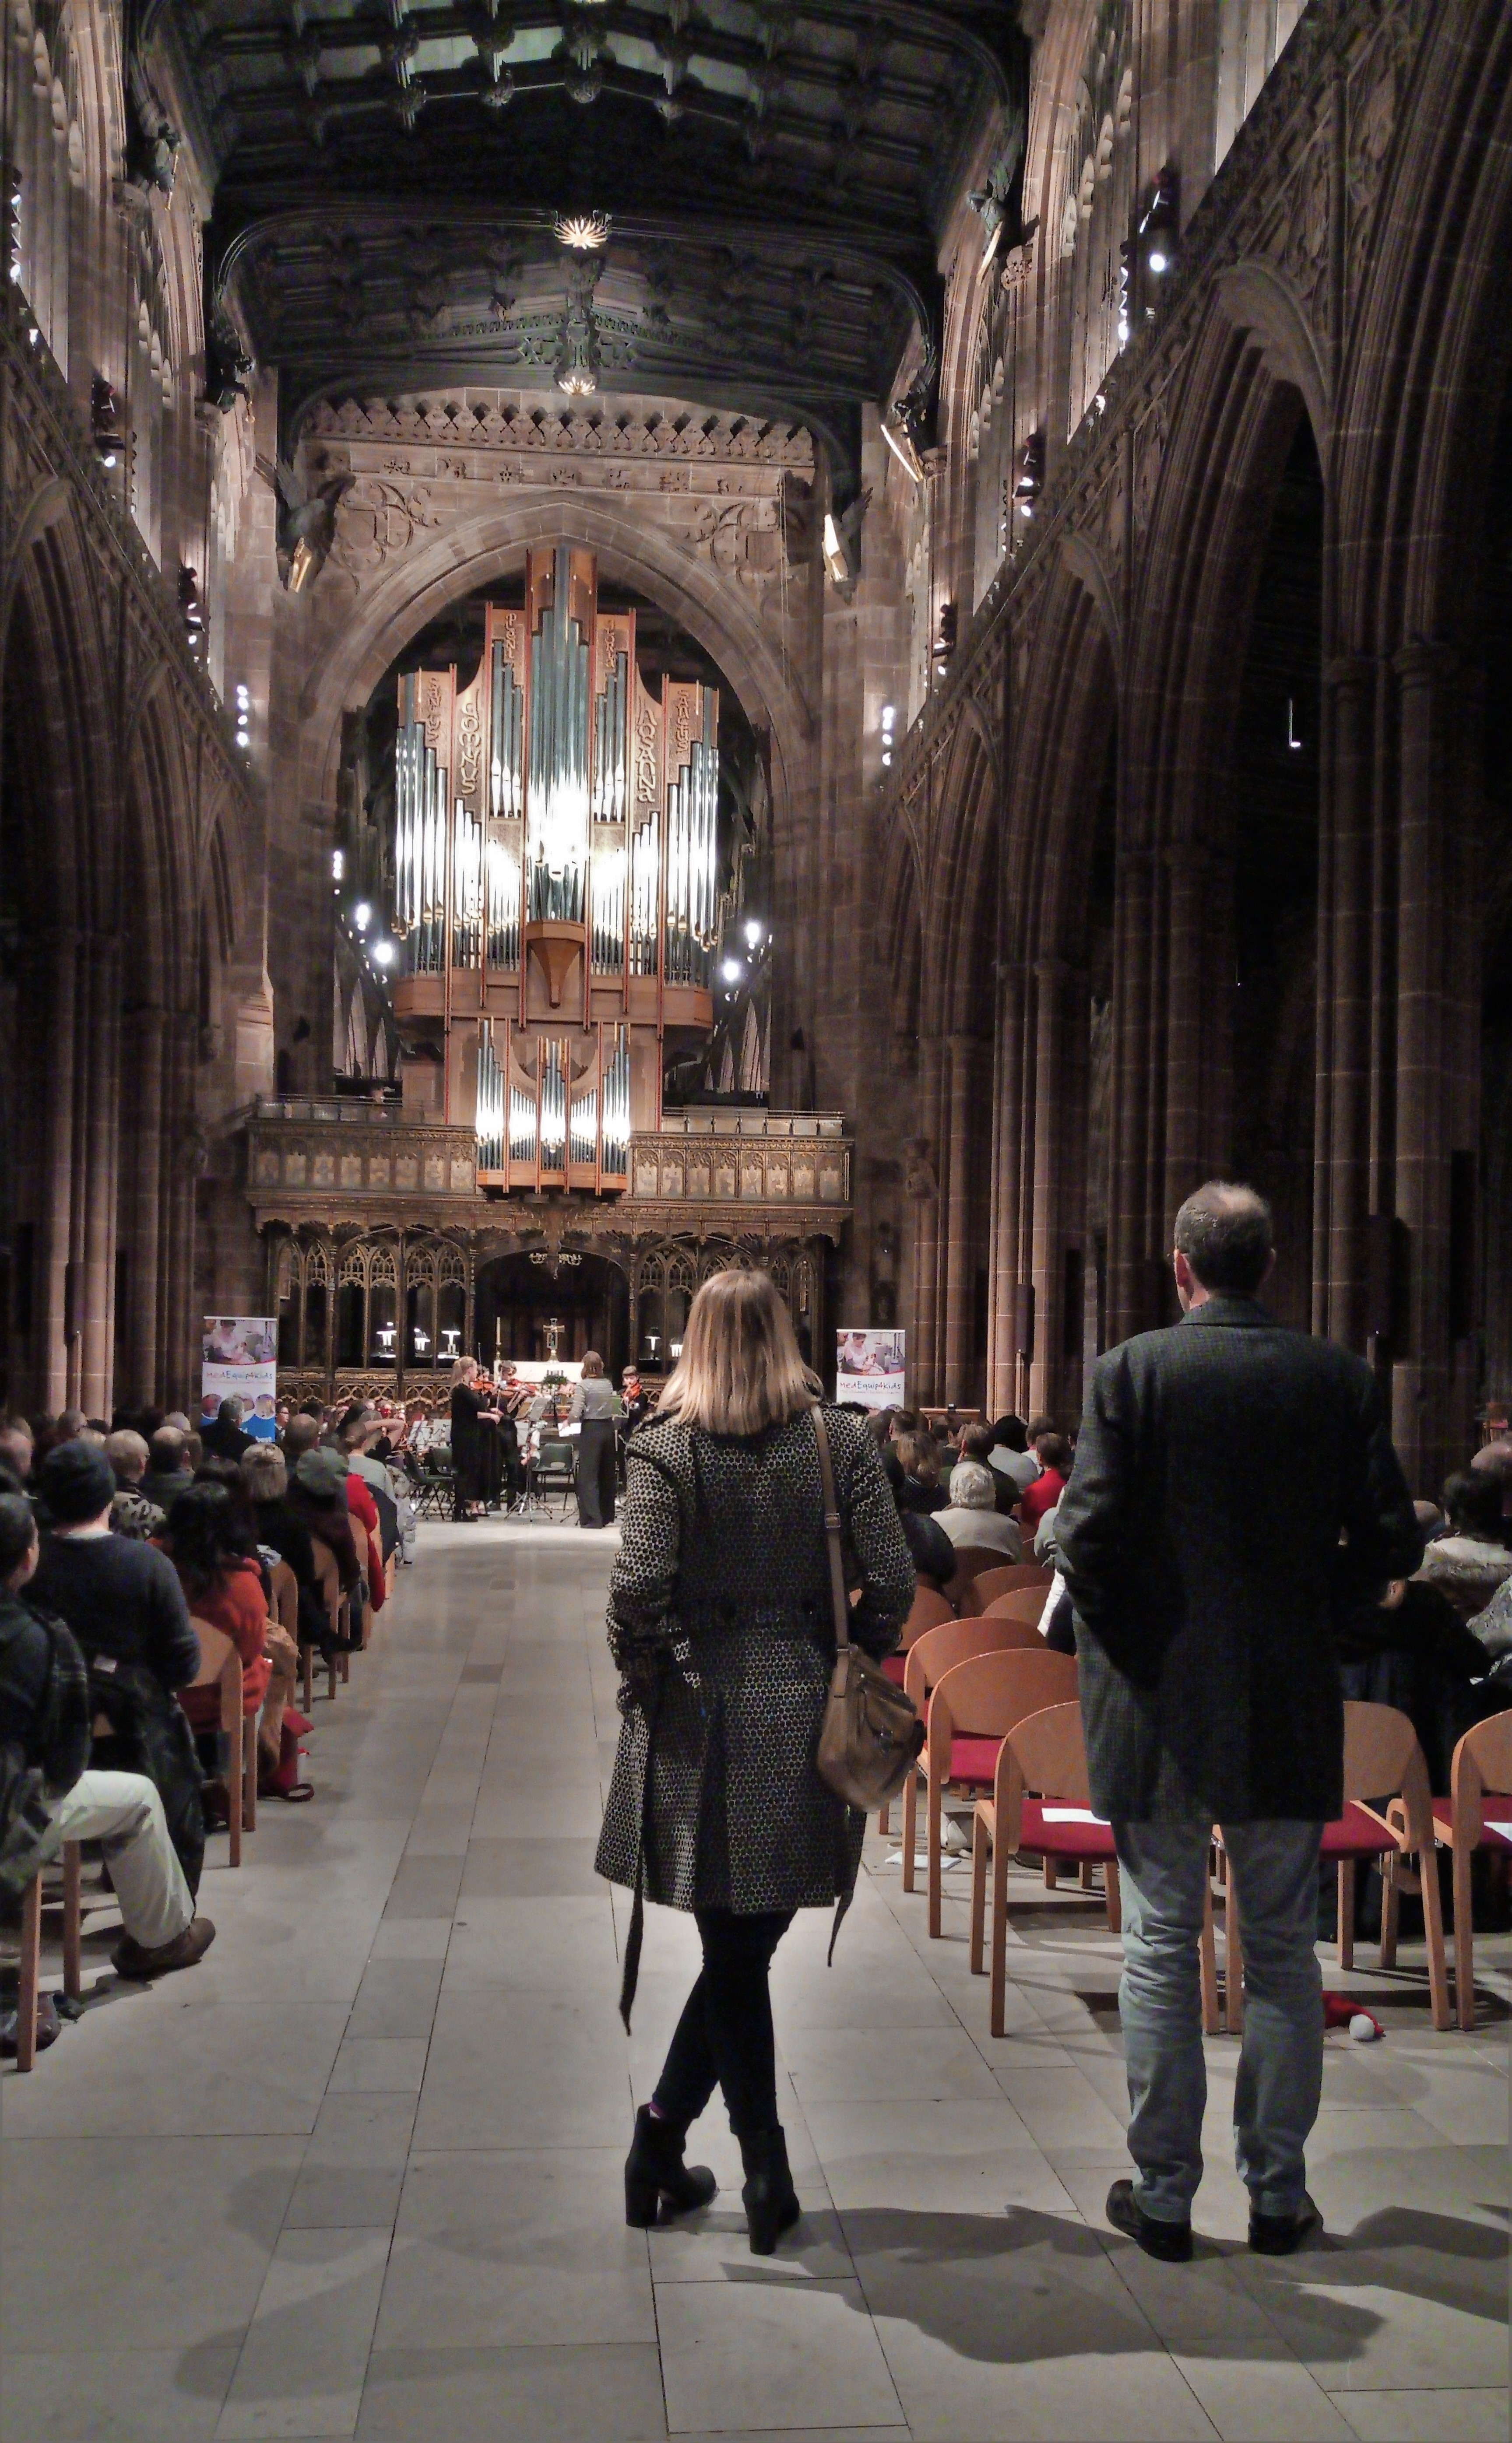 Manchester Catedral Concert